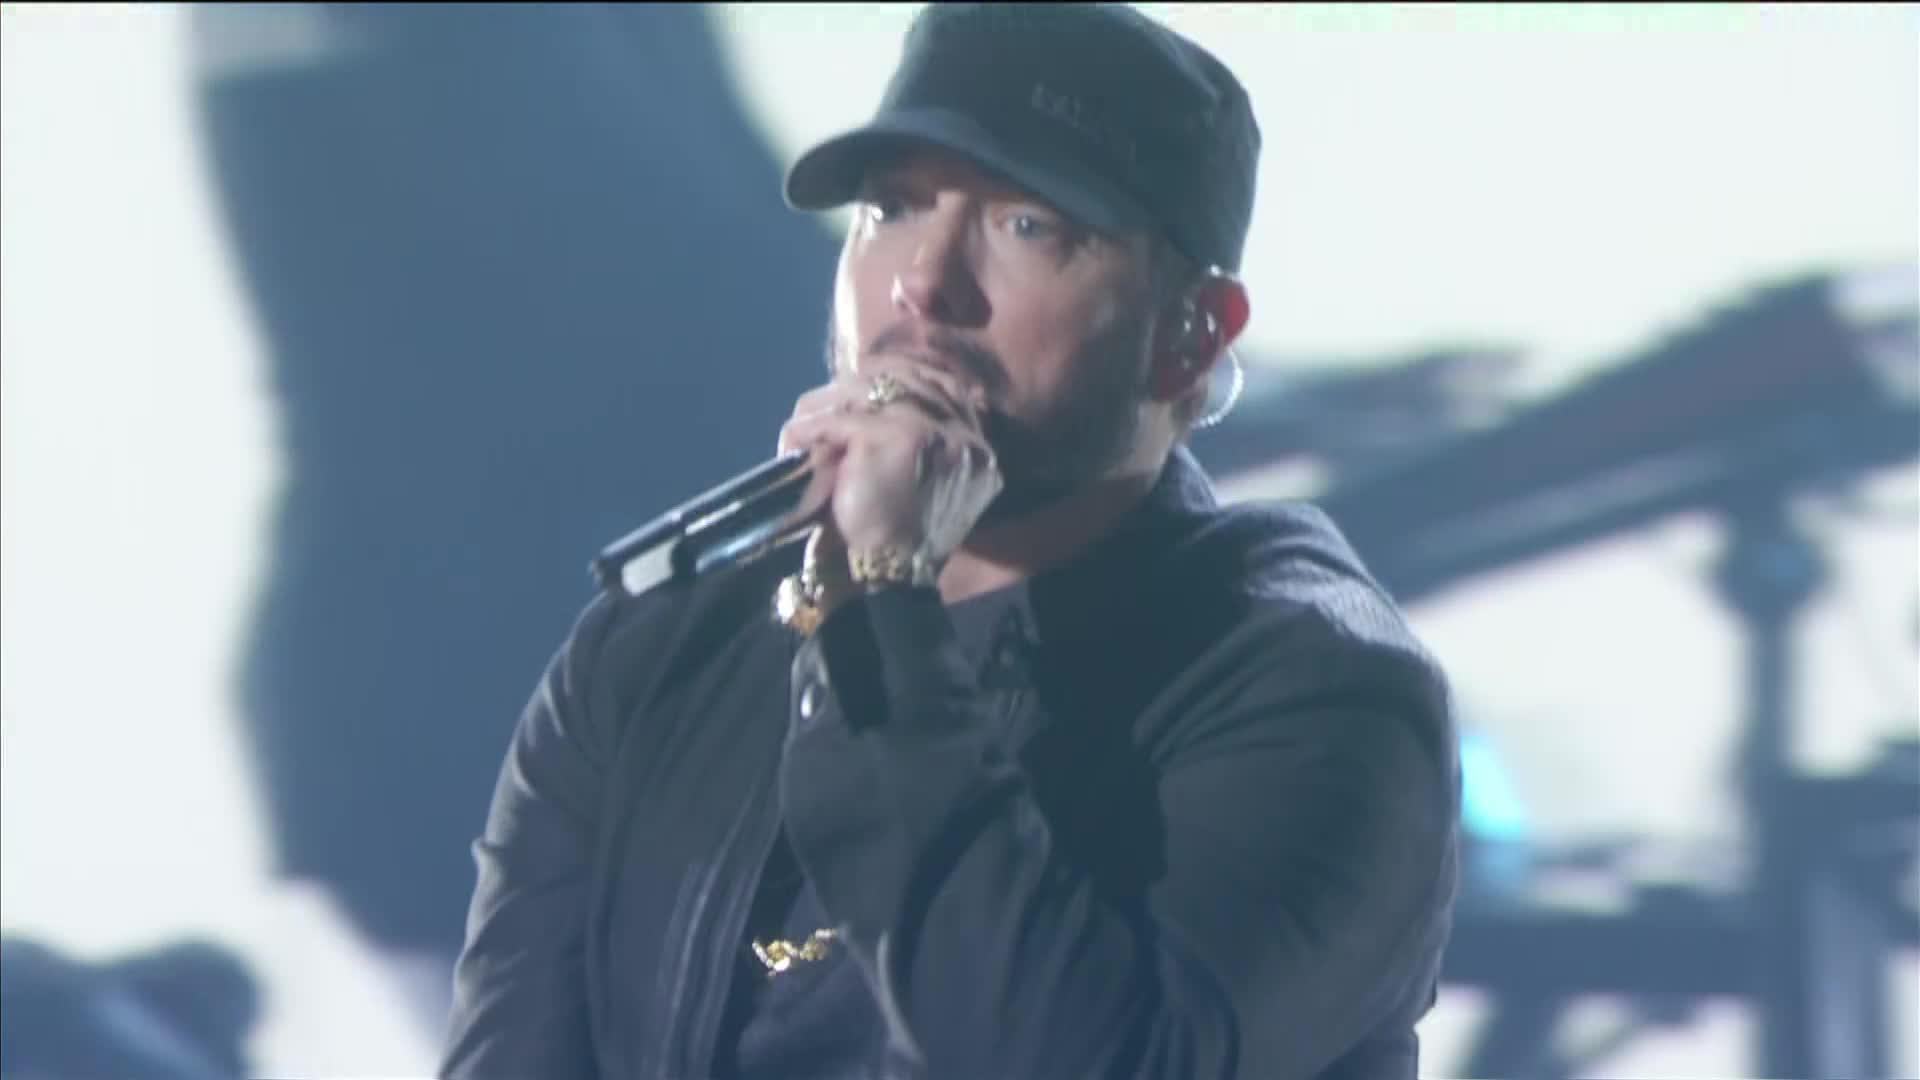 Eminem - Lose Yourself (Oscars 2020)